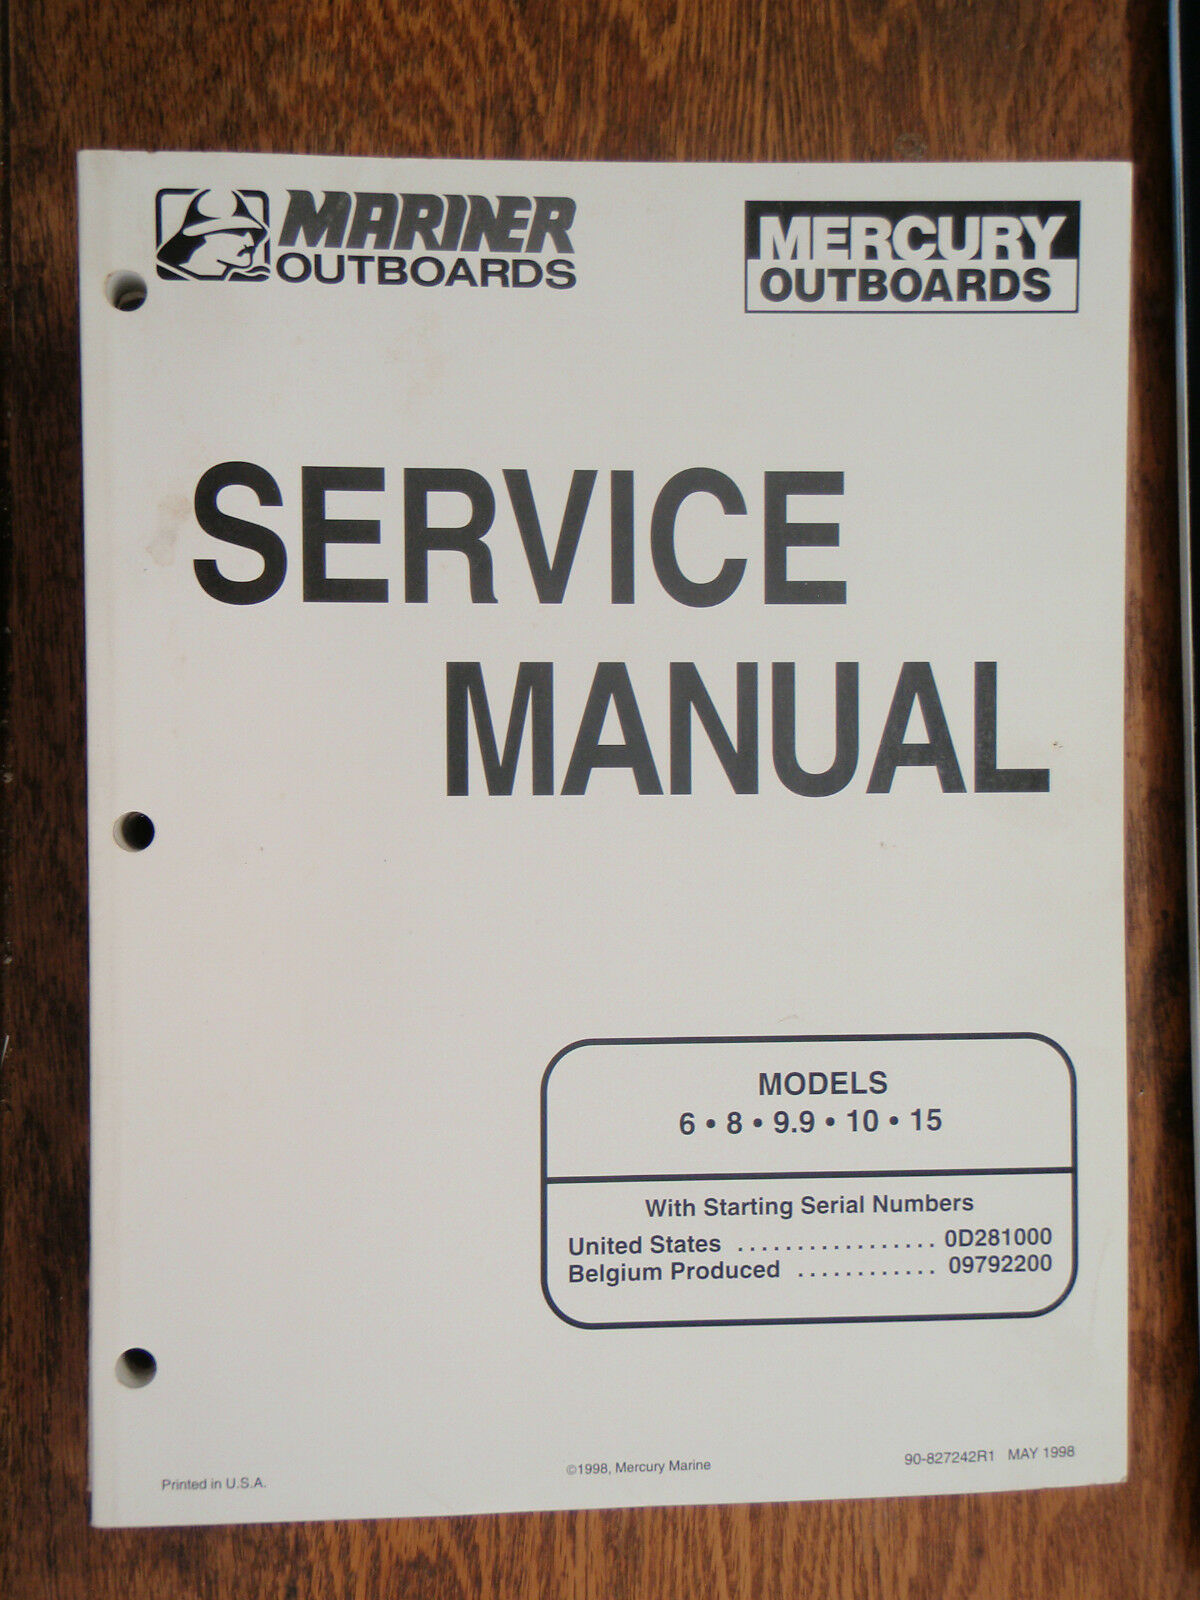 Service Manual Mercury 6Hp 8Hp 9.9Hp 10Hp 15Hp 90-827242R1 Mariner Motors  Boat 1 of 1Only 1 available See More